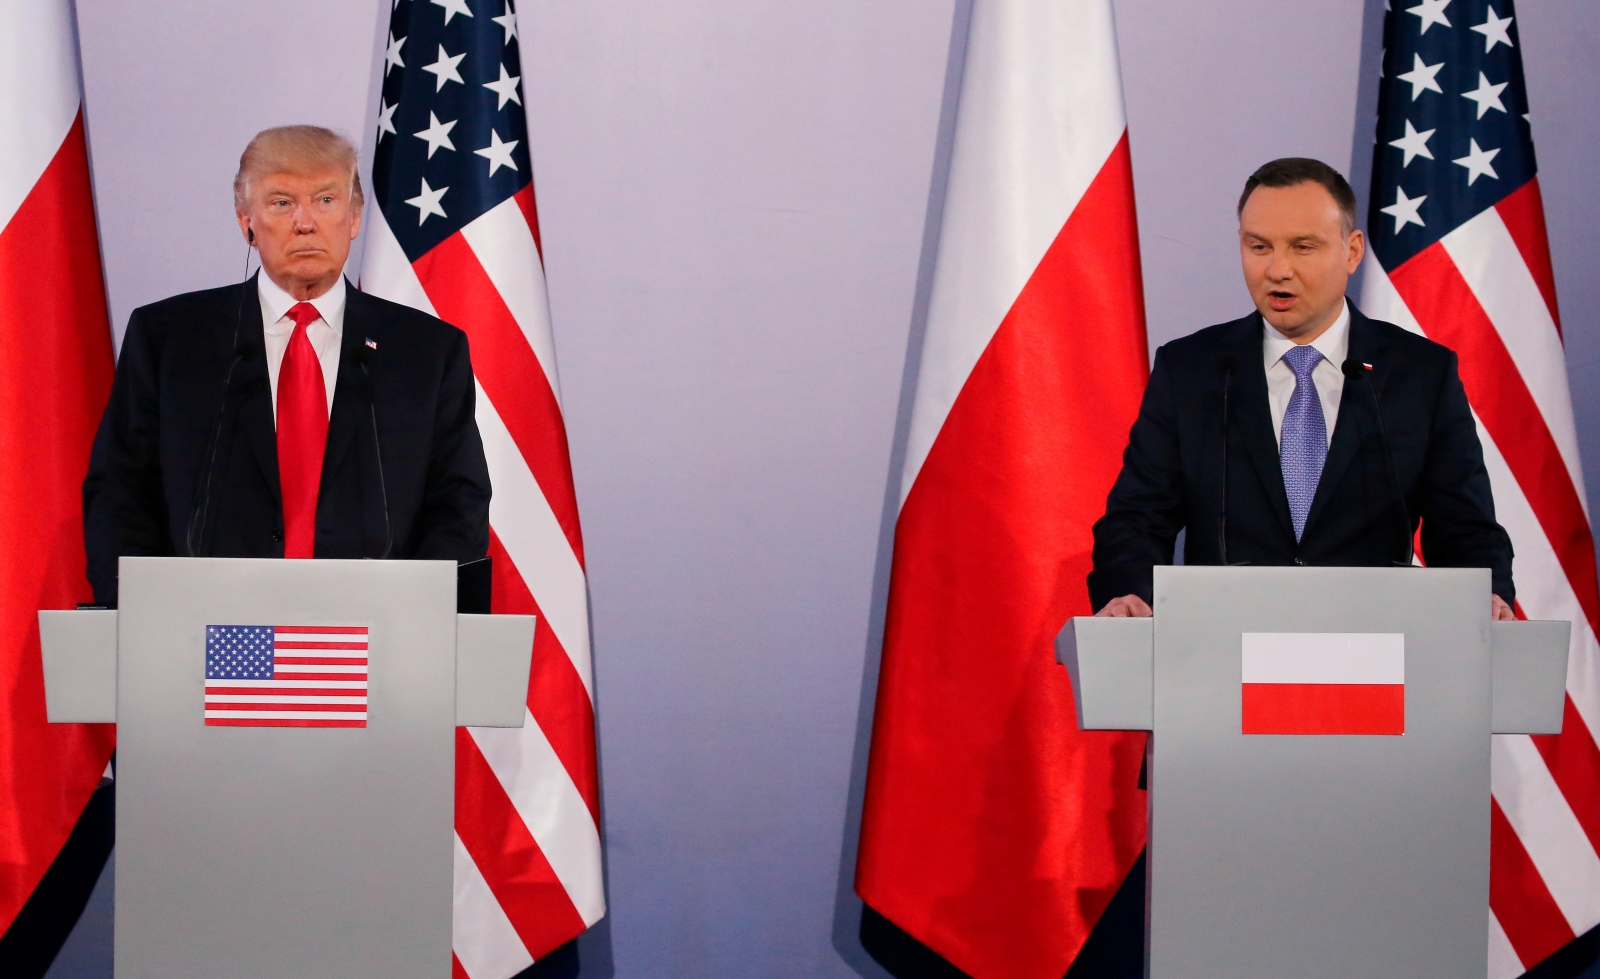 Trump arrives in Poland ahead of G20 summit